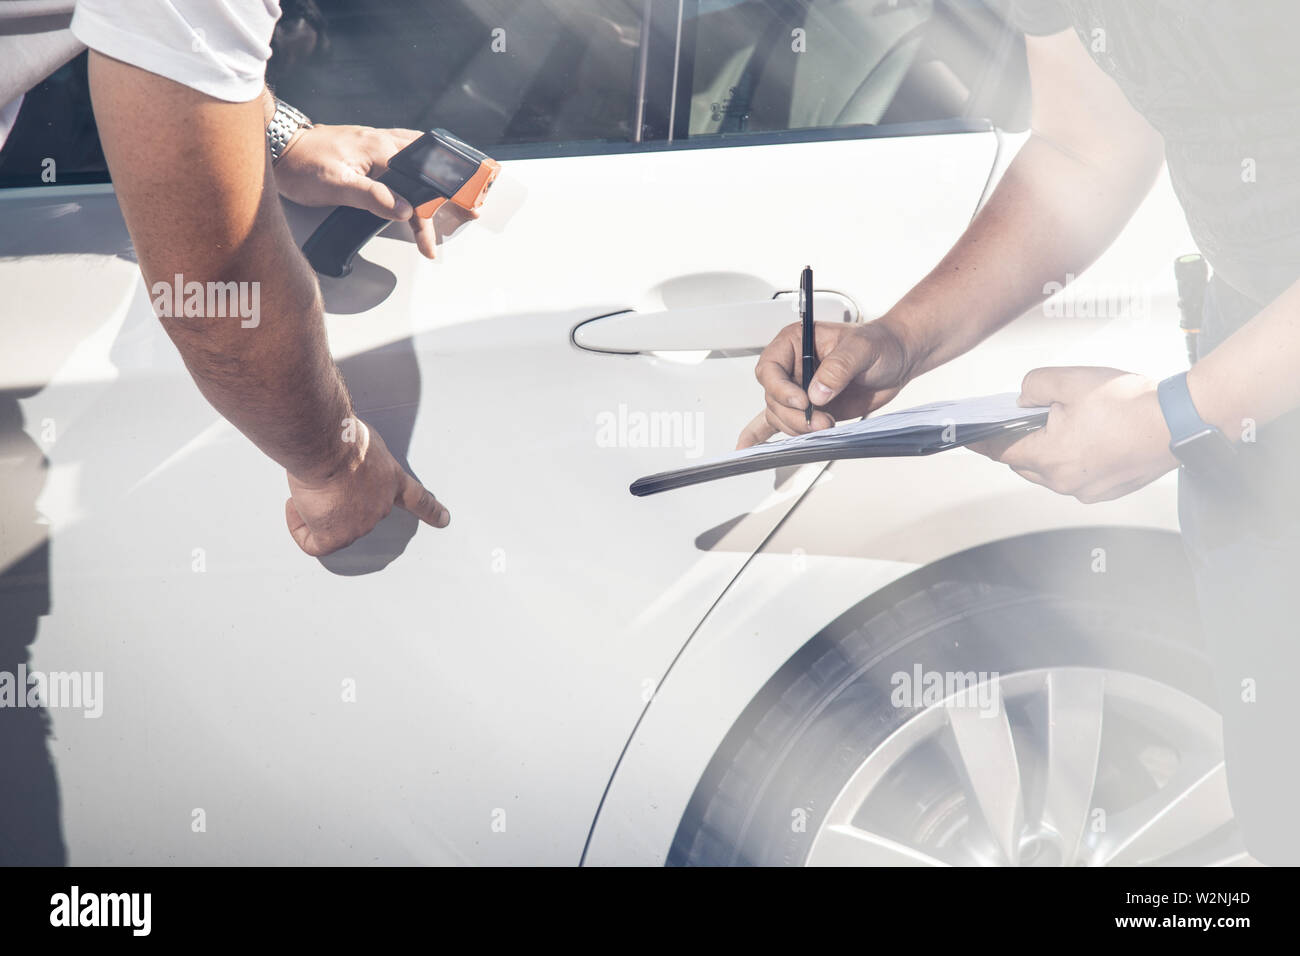 Against the background of a white car, inspectors inspect the transport vehicle, record defects. Stock Photo